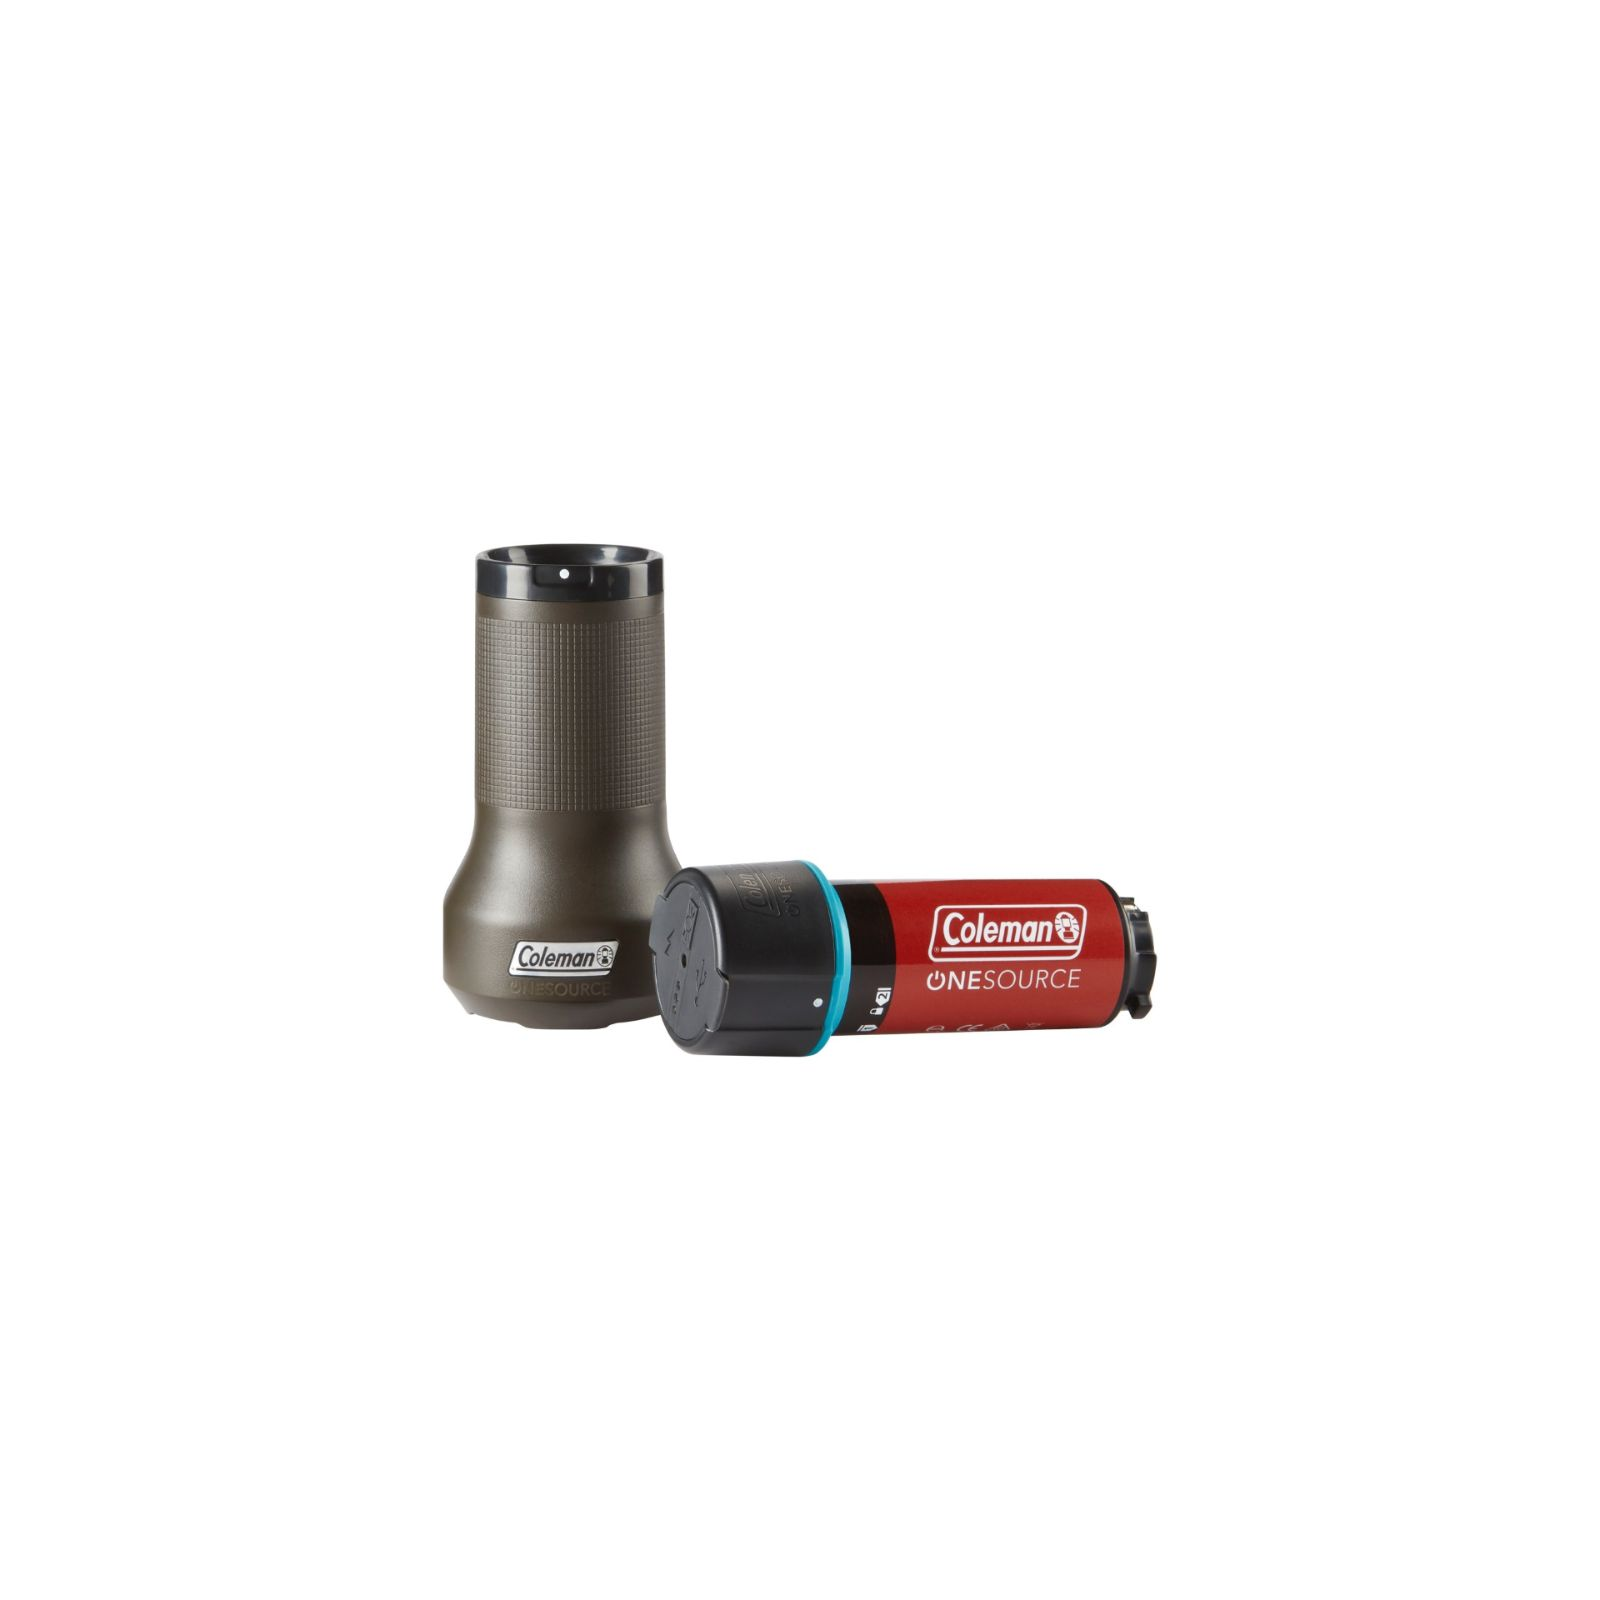 Coleman Battery Pack Onesource Chrg 1 Slot C002